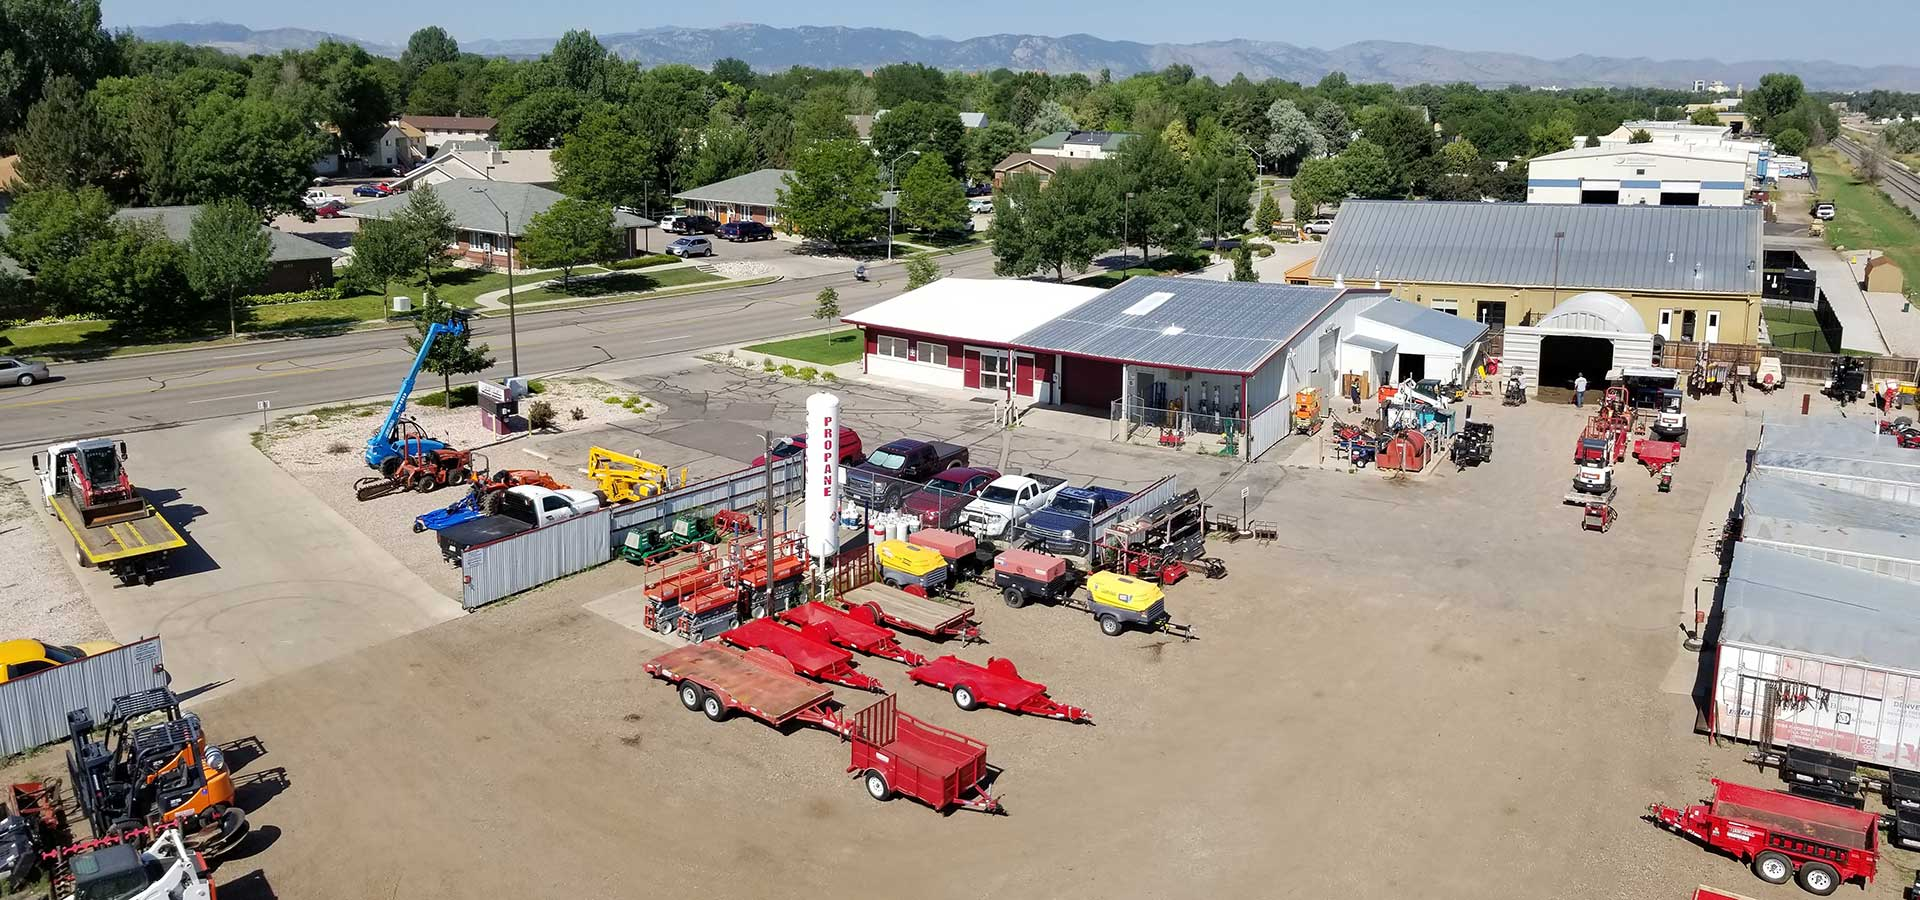 Equipment Rentals in the Fort Collins area